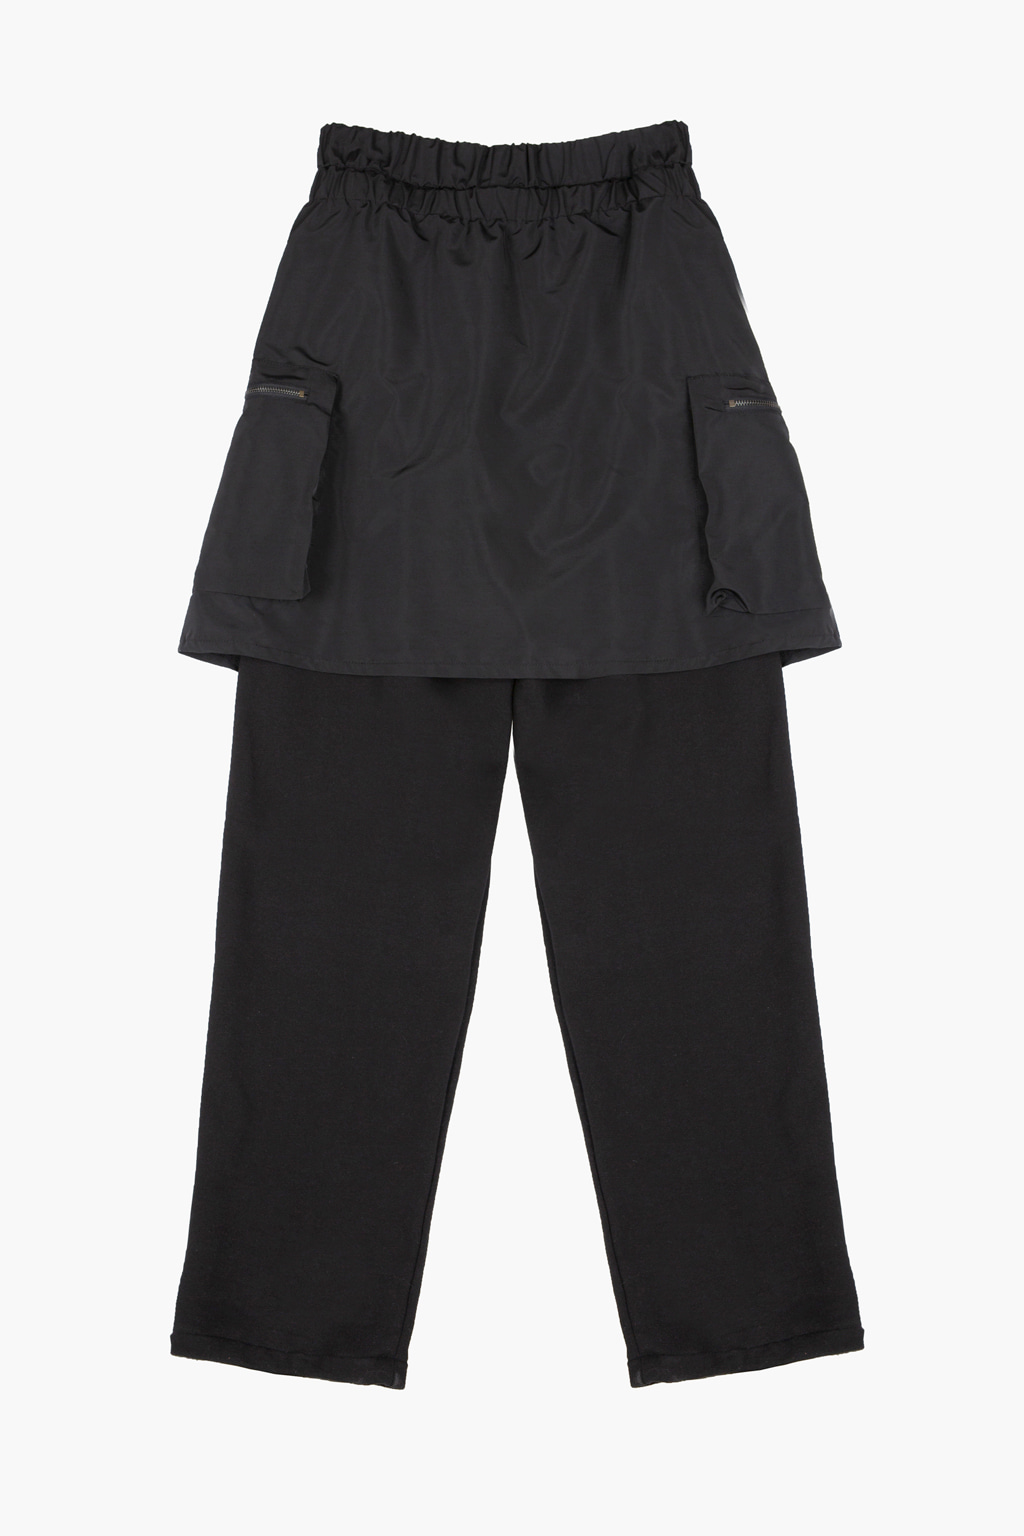 Layered Utility Cargo Skirt Lounge Pants - black